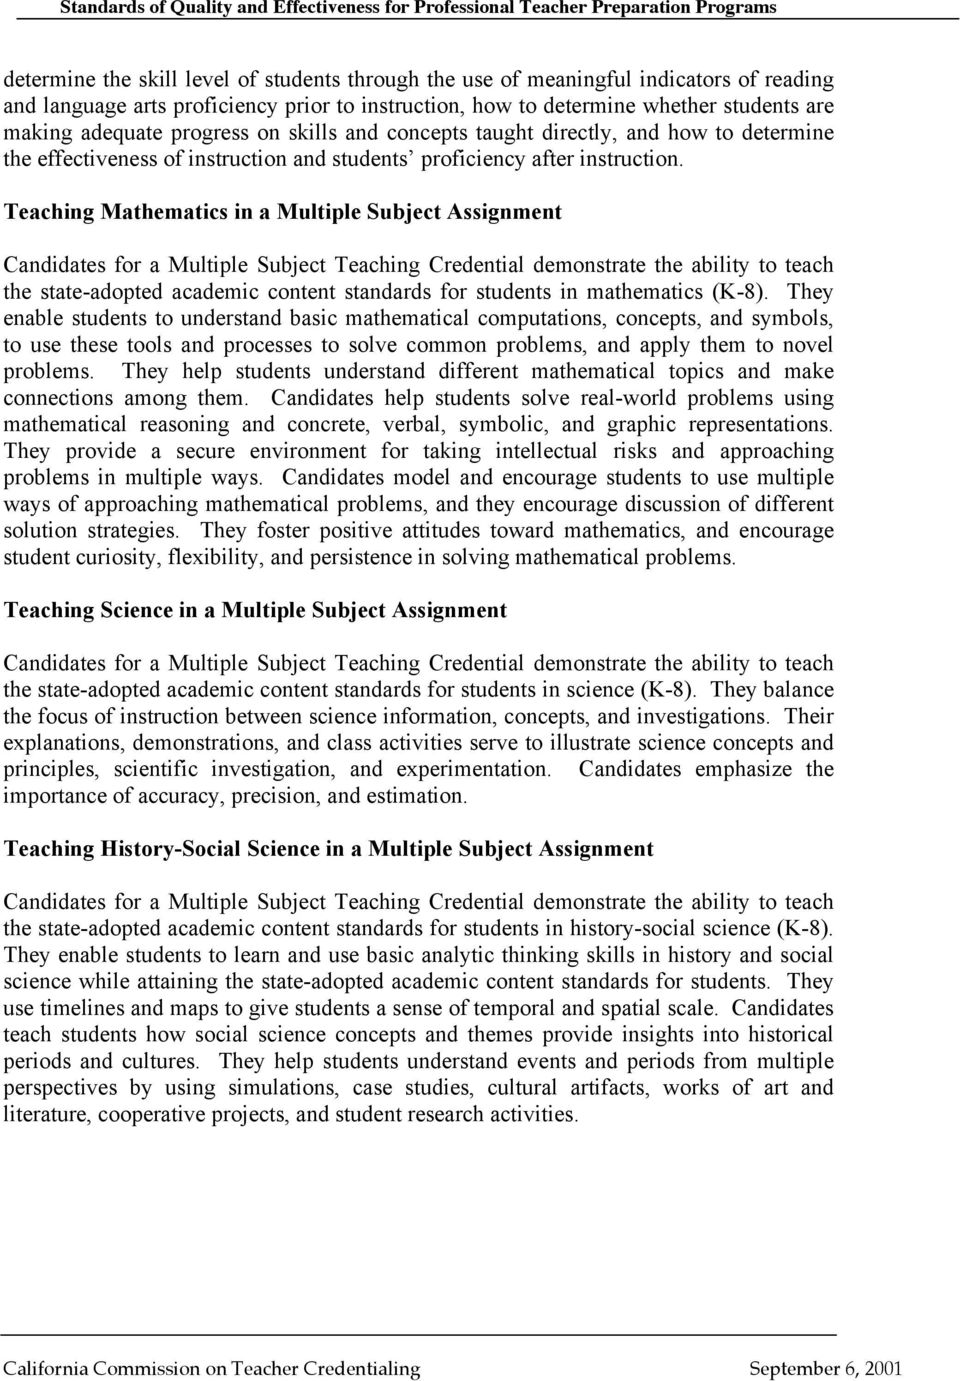 Teaching Mathematics in a Multiple Subject Assignment Candidates for a Multiple Subject Teaching Credential demonstrate the ability to teach the state-adopted academic content standards for students